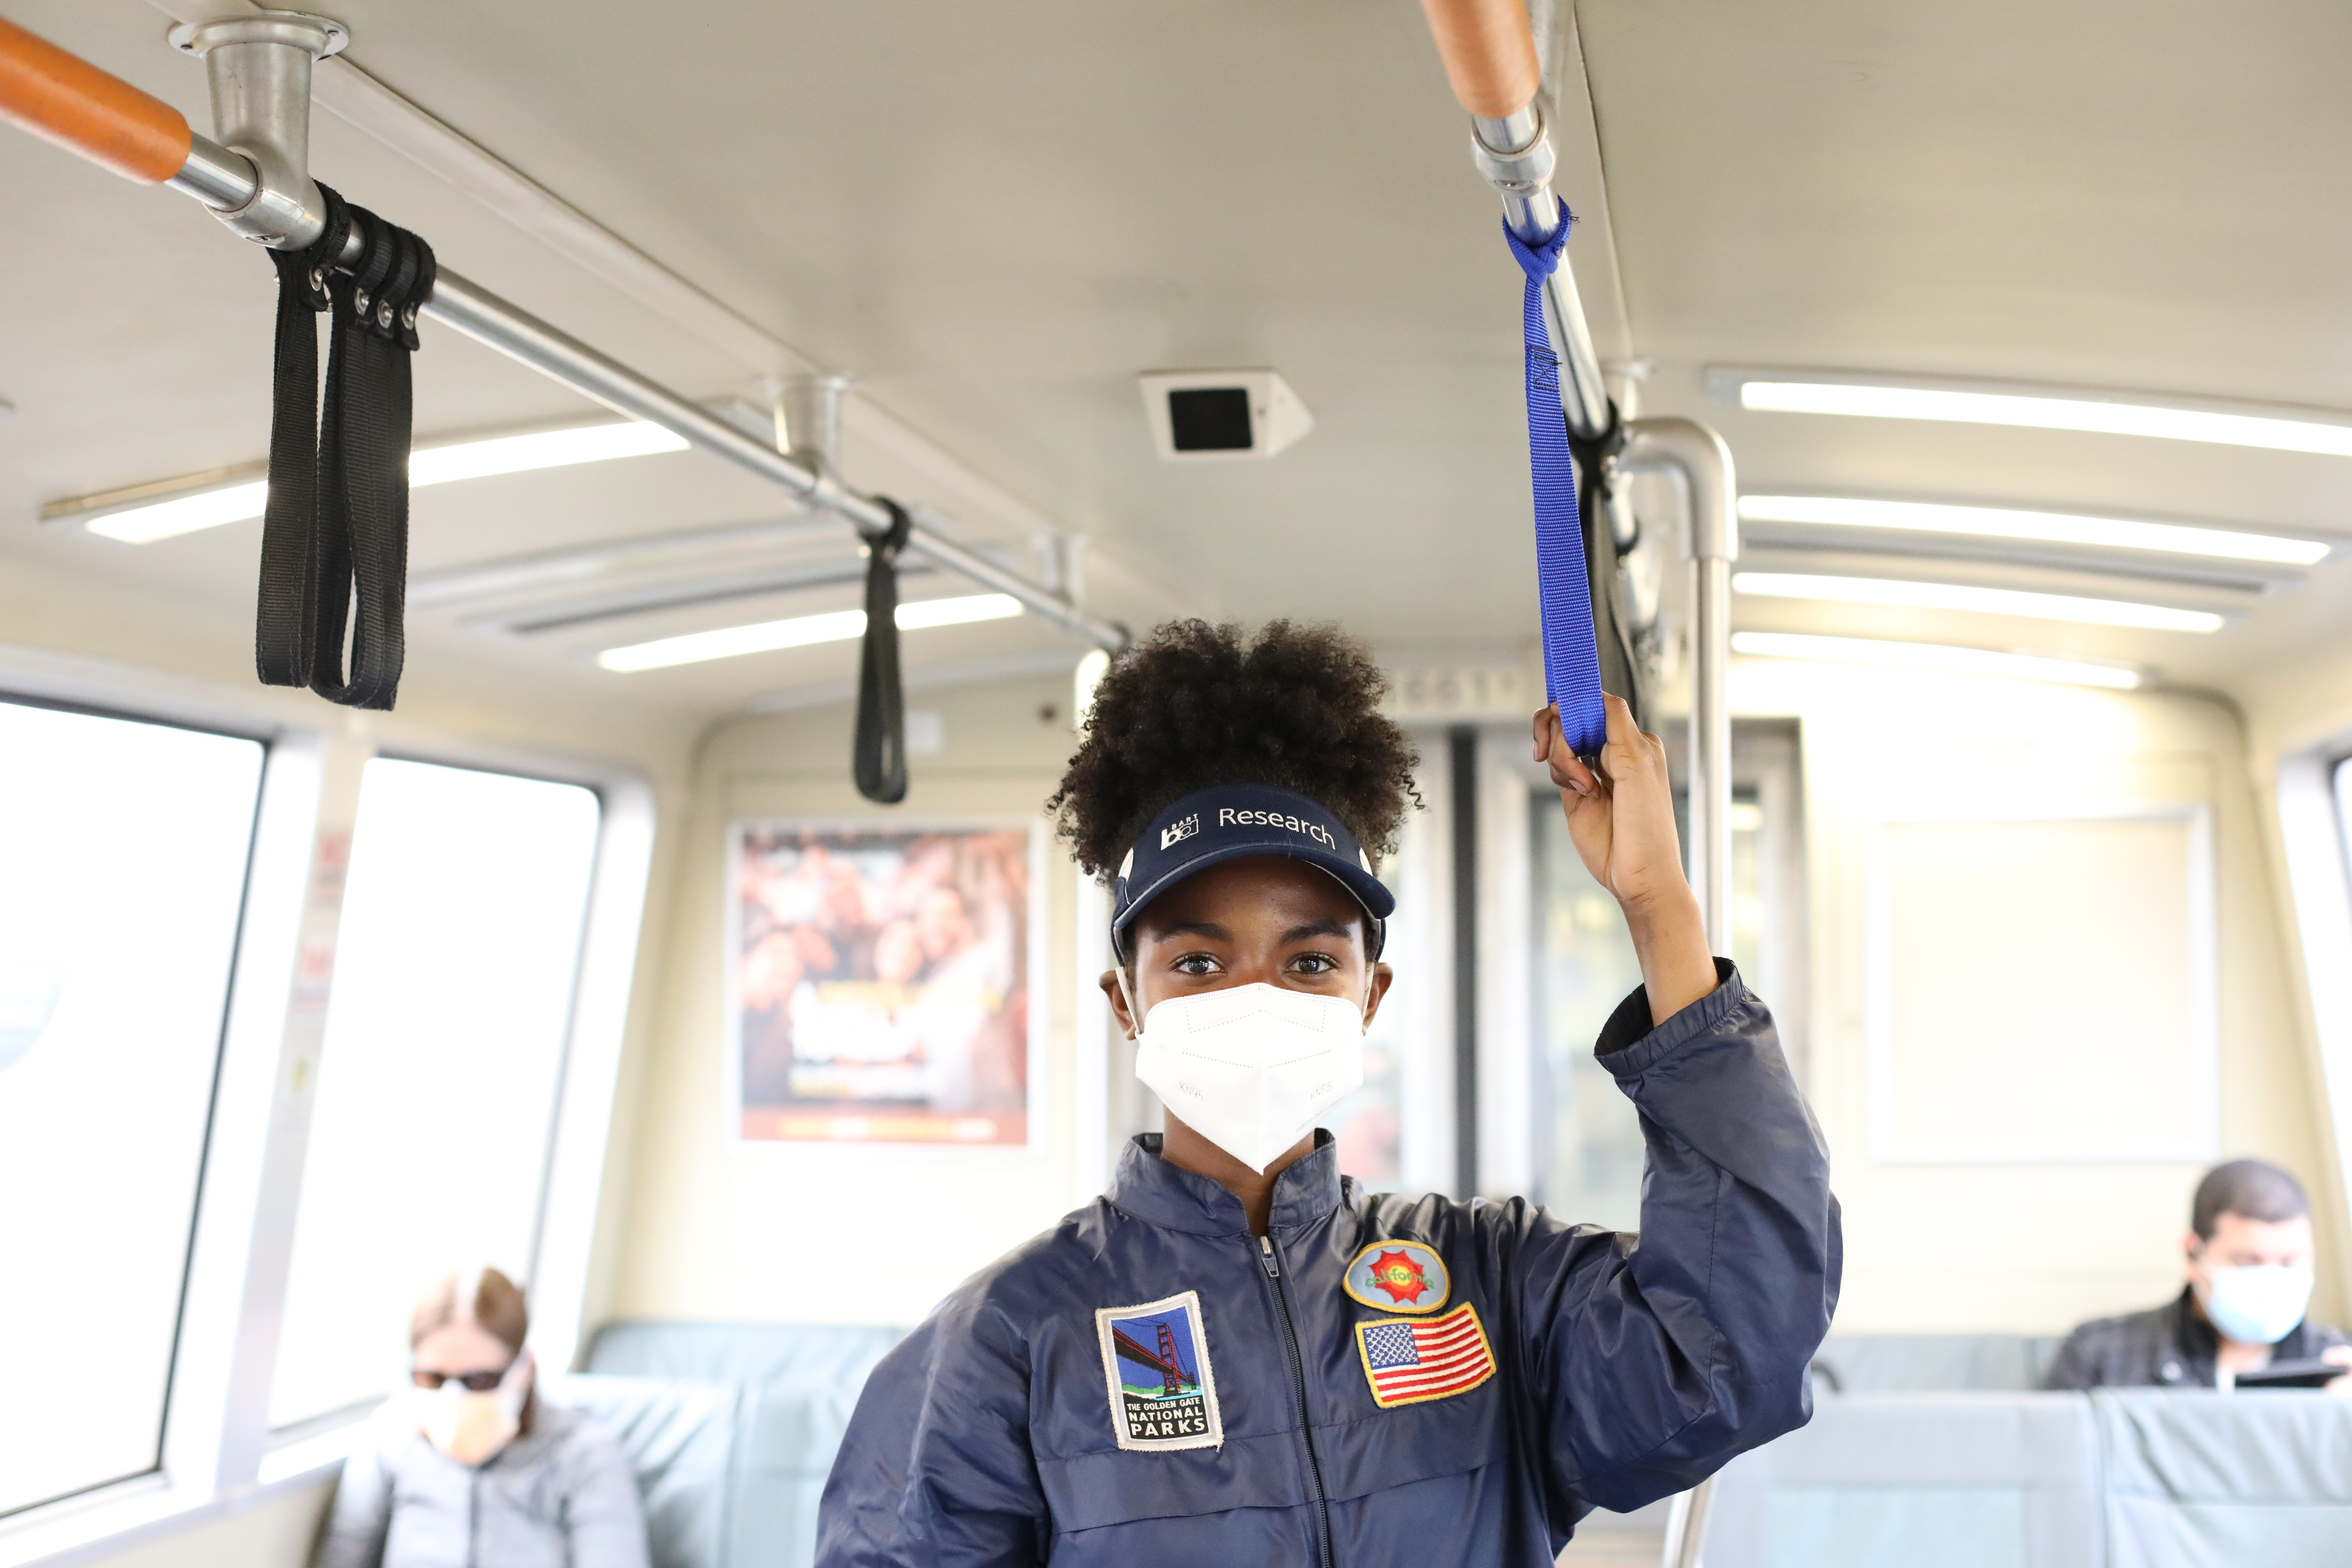 BART staff using a personal hand strap